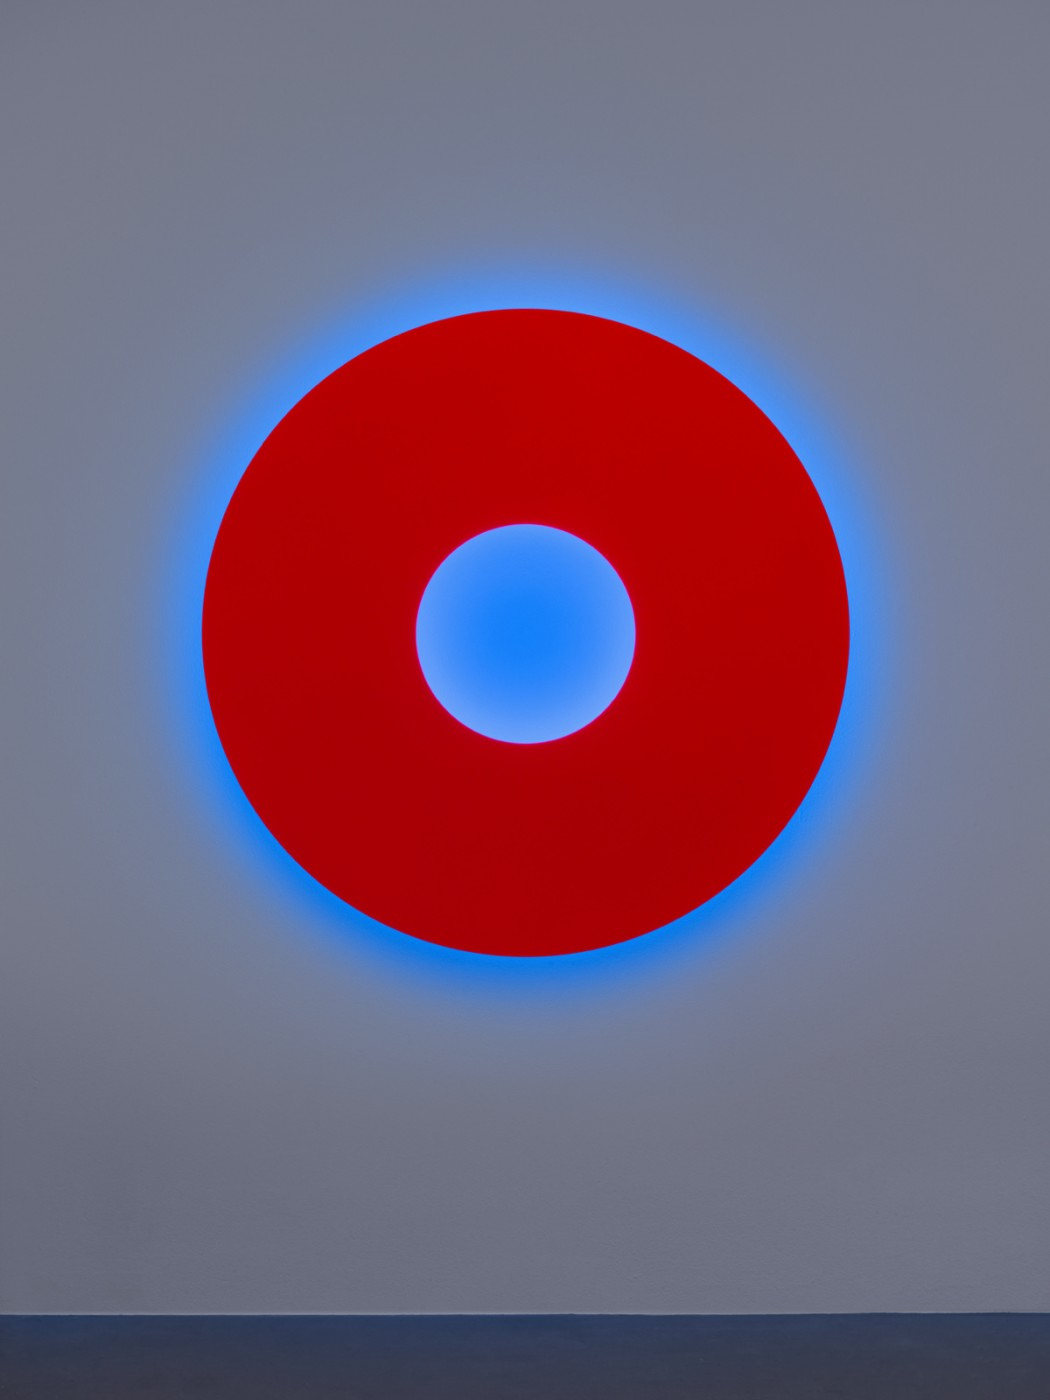 Small Disc Orange /Pink, Blue Intenso, 2016